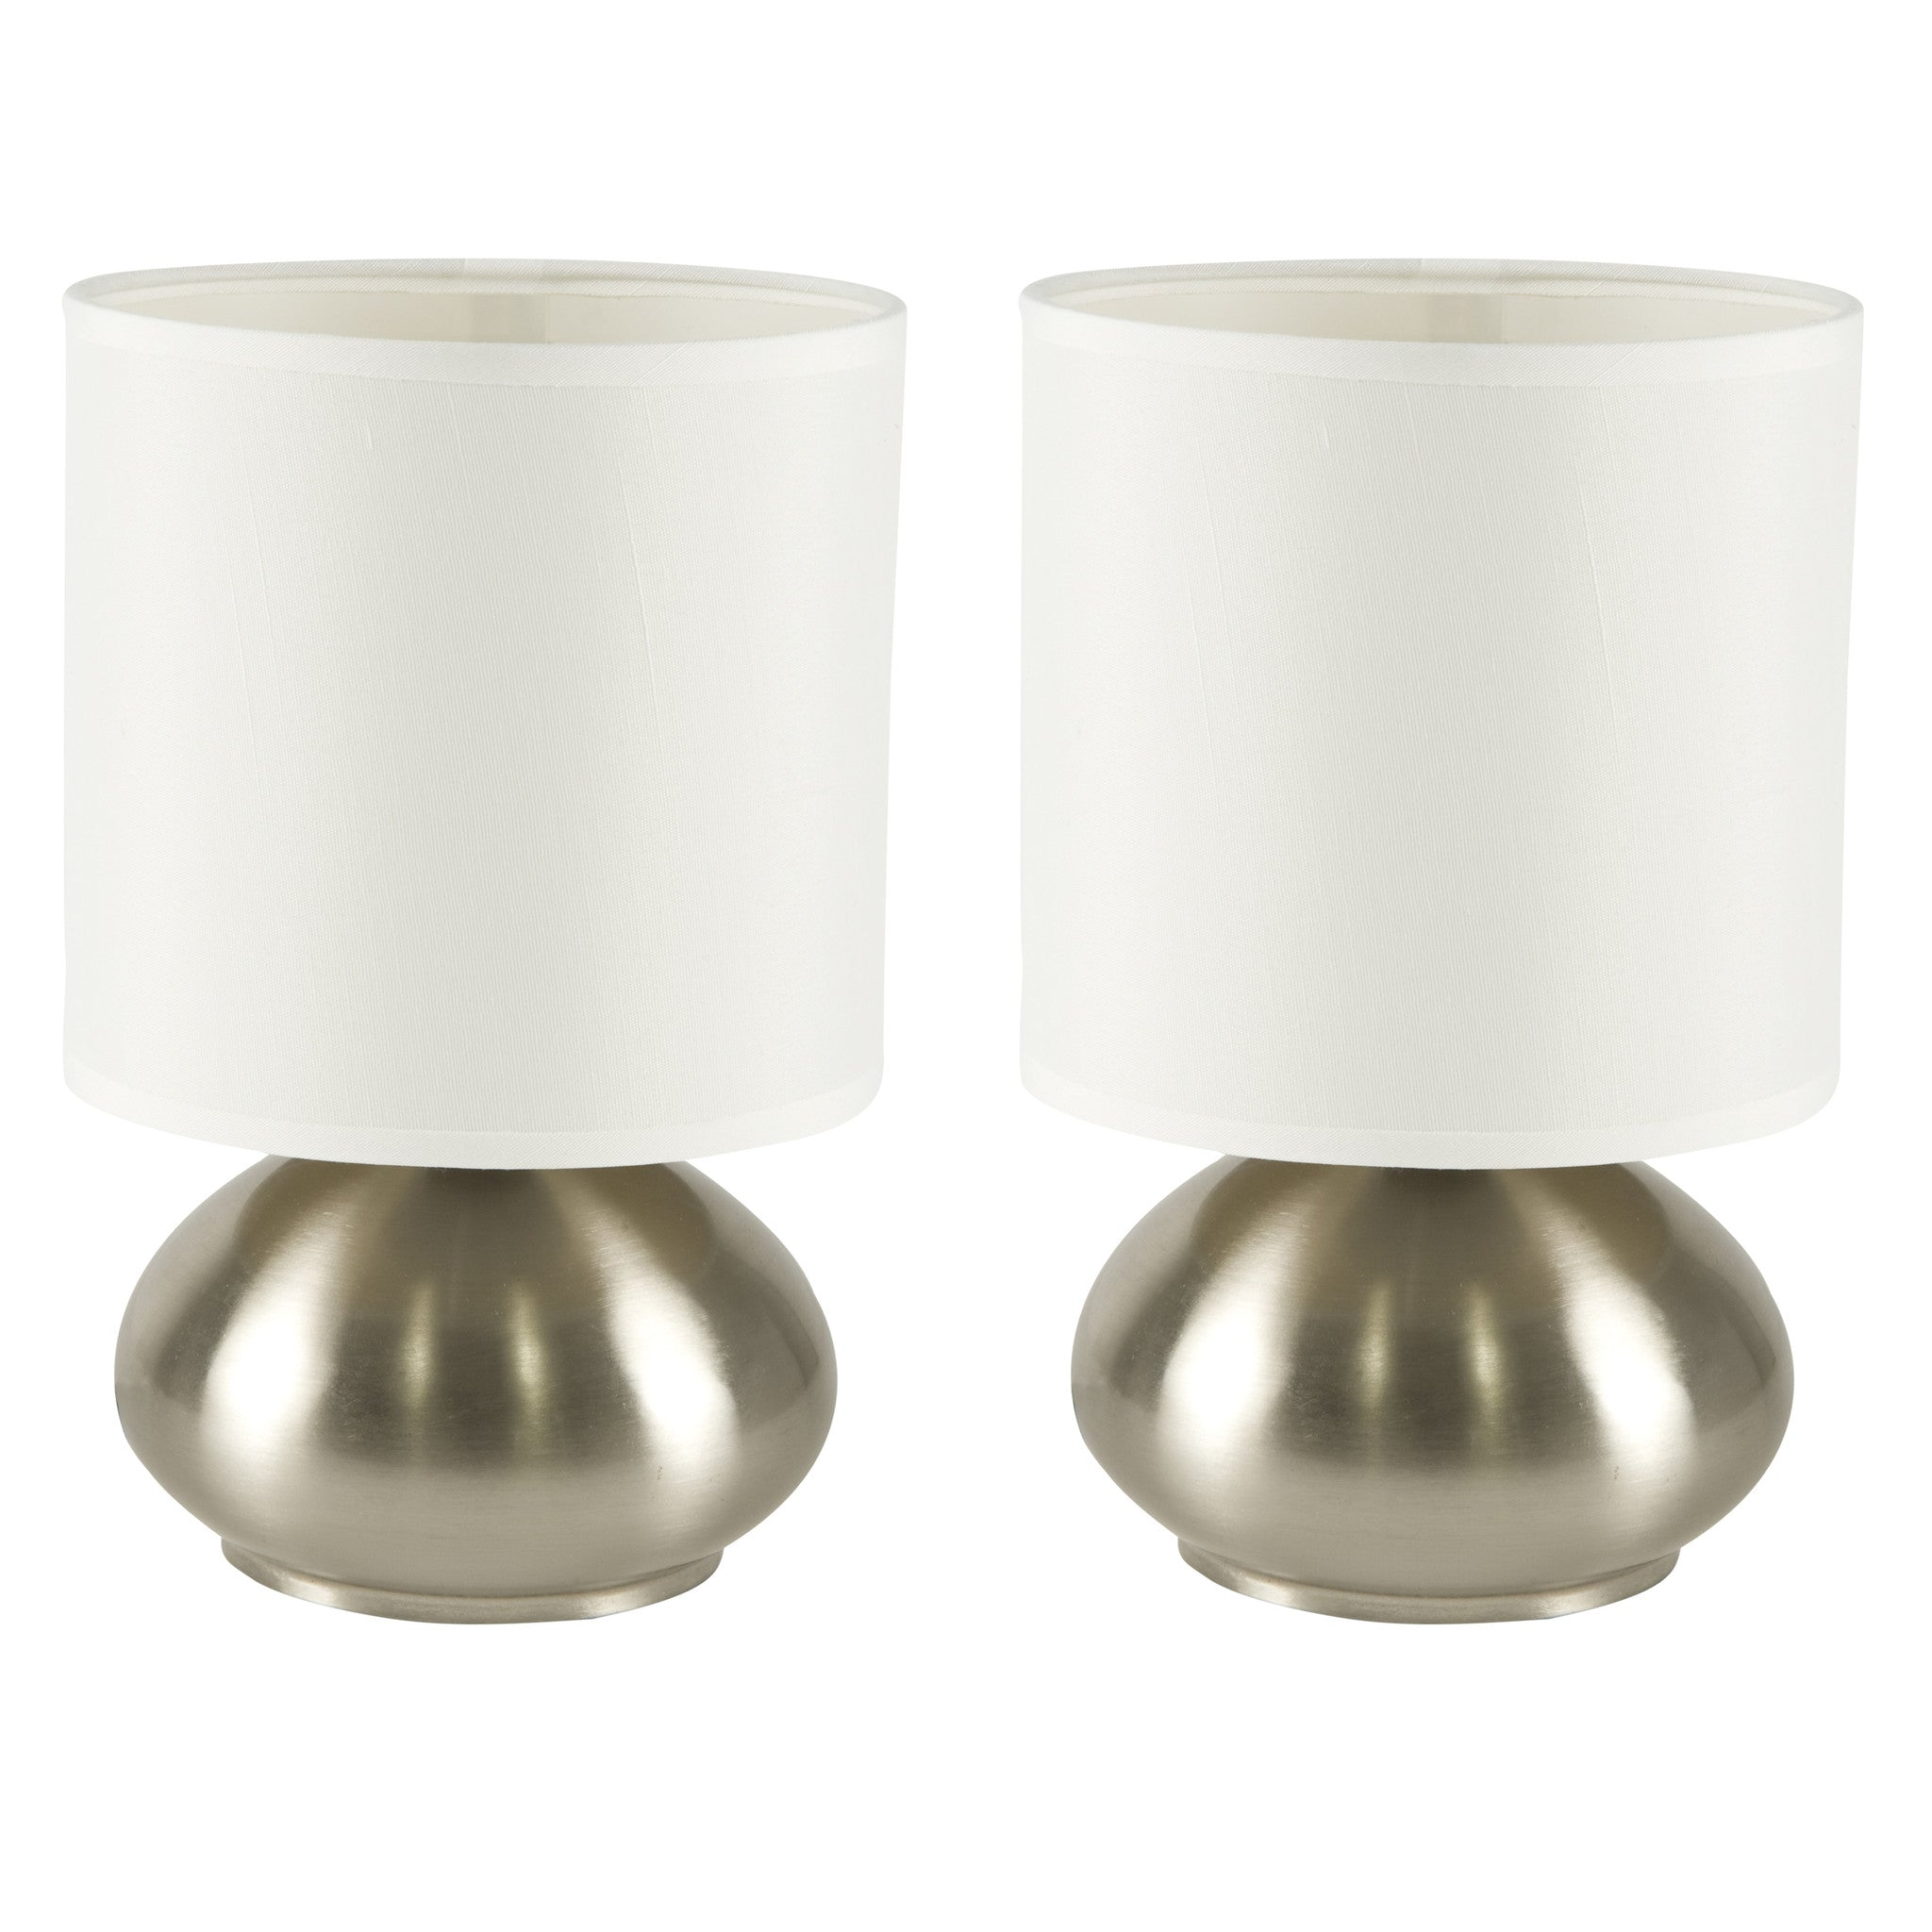 Bedroom Table Lamp With On Off Touch Sensor 2 Pack Brushed Nickel 3 Way Brass Light Switch Accents Side Lamps Set Of